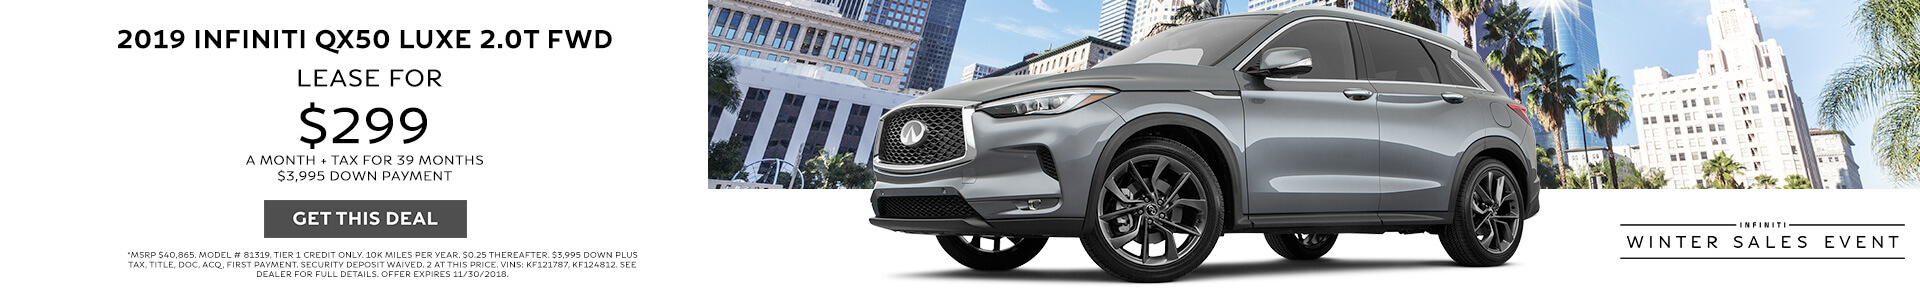 QX50 Lease for $389 per month